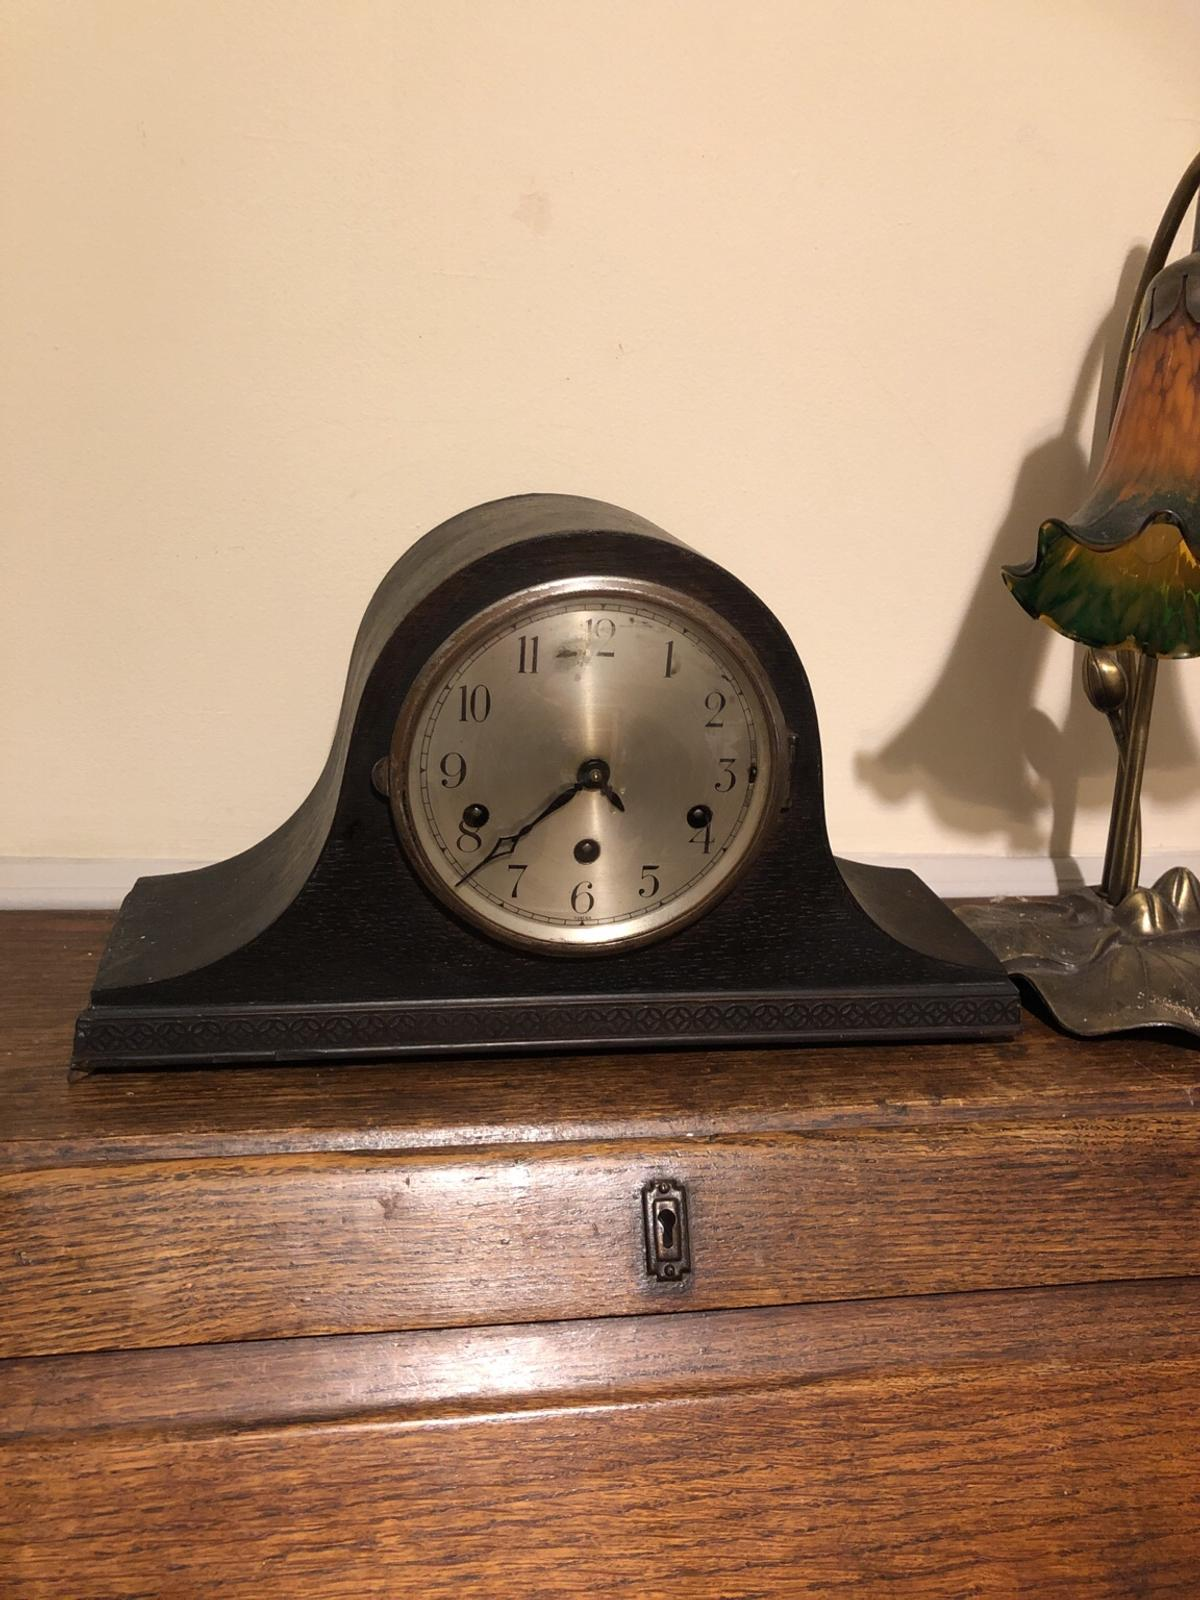 Westminster Chiming Clock In Cannock Chase For 35 00 For Sale Shpock